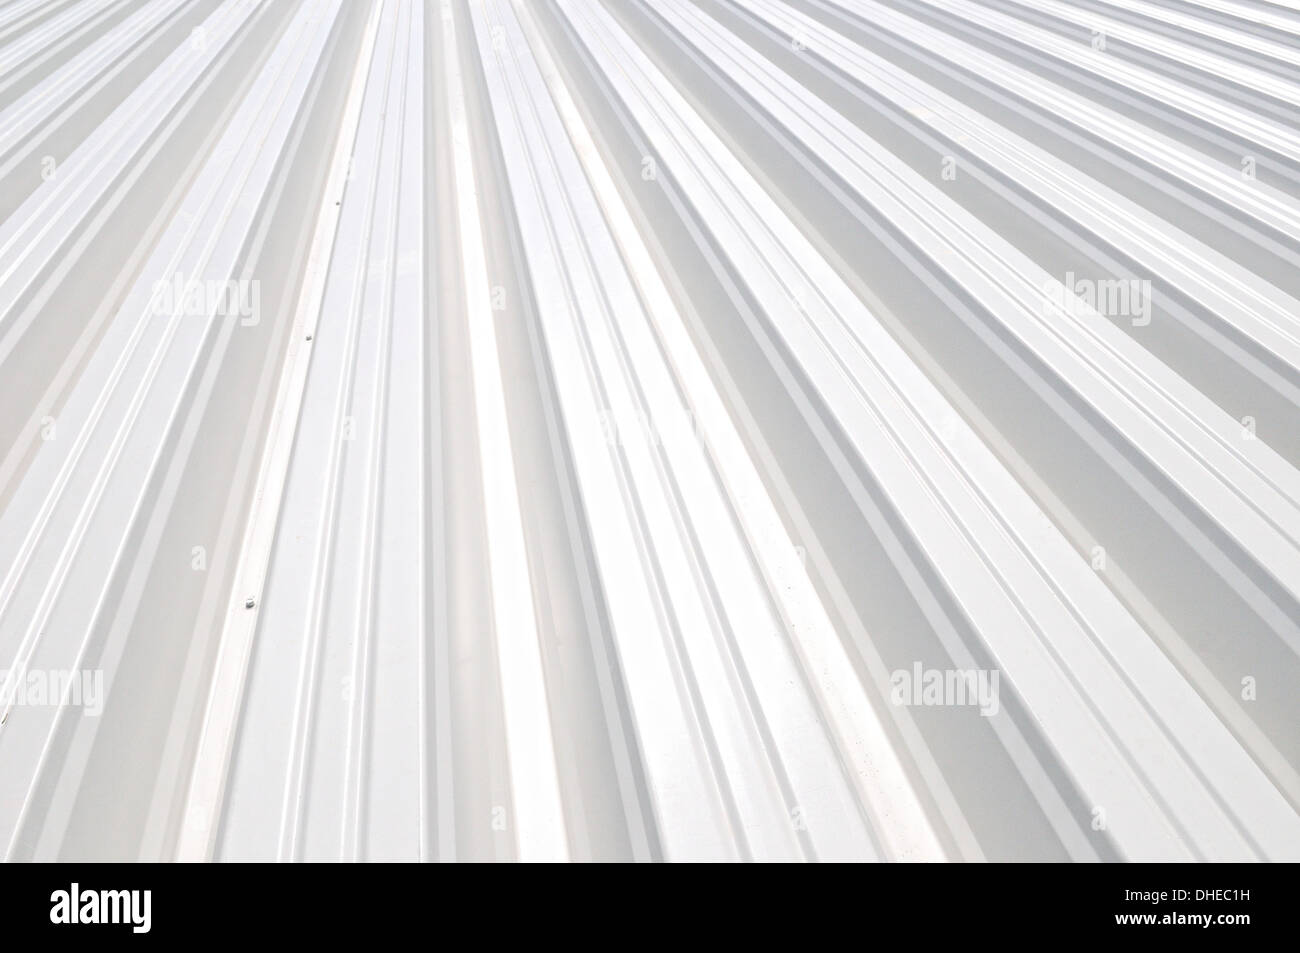 white trapezoidal sheet - Stock Image